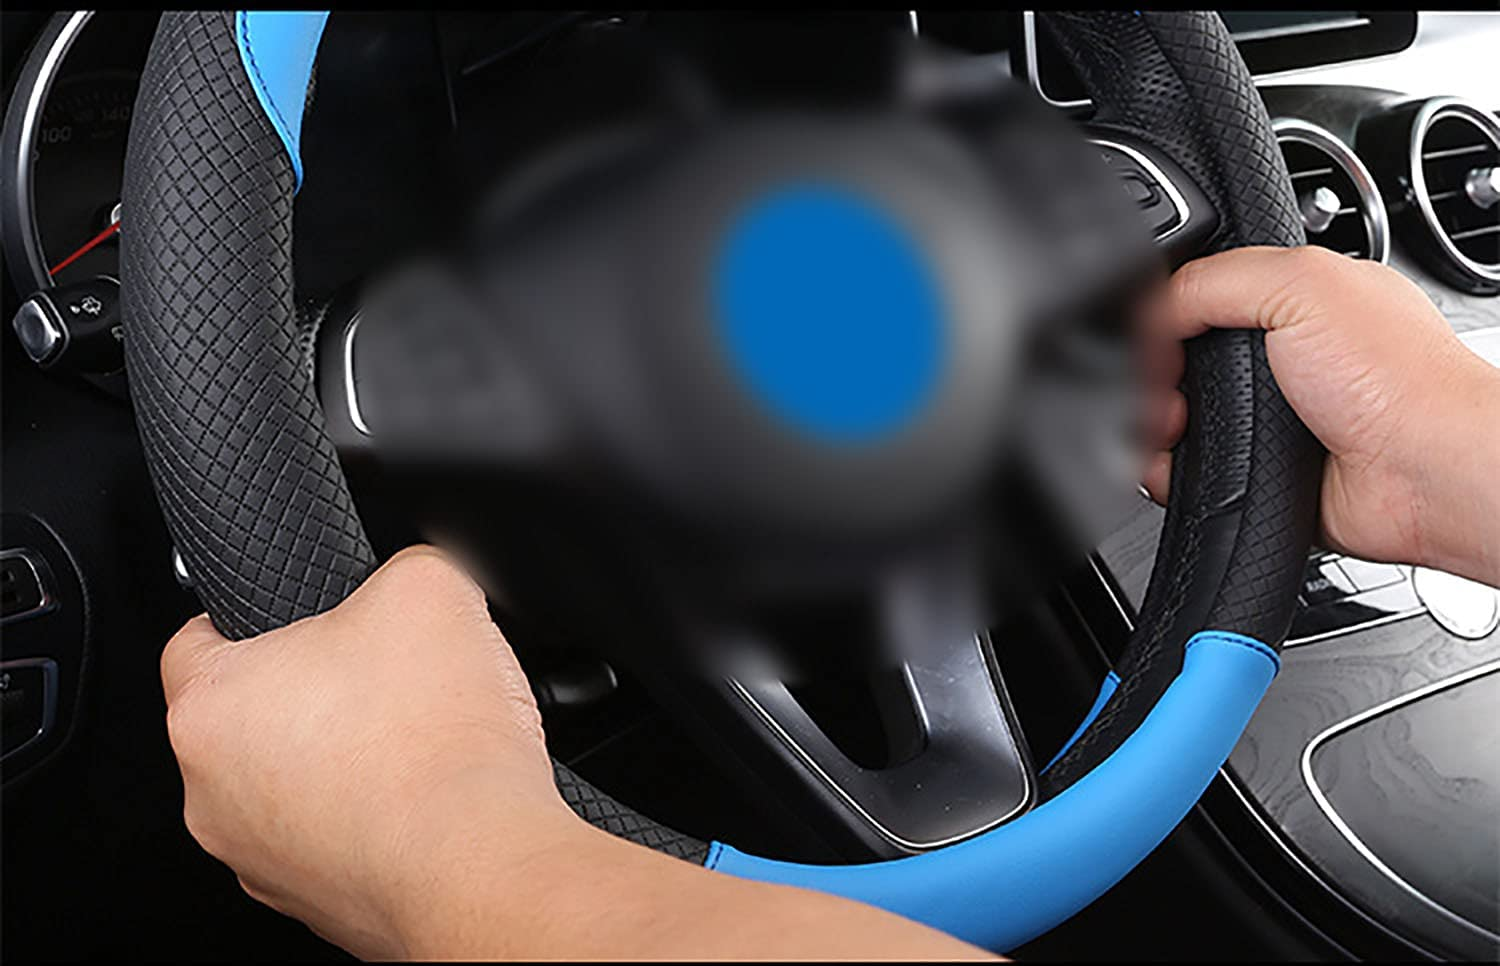 Universal 15 Inches Microfiber Leather Viscose Anti-Slip Steering Wheel Protector Breathable Auto Car Steering Wheel YYaaloa 2pcs Car Steering Wheel Cover 2pcs, Black Blue